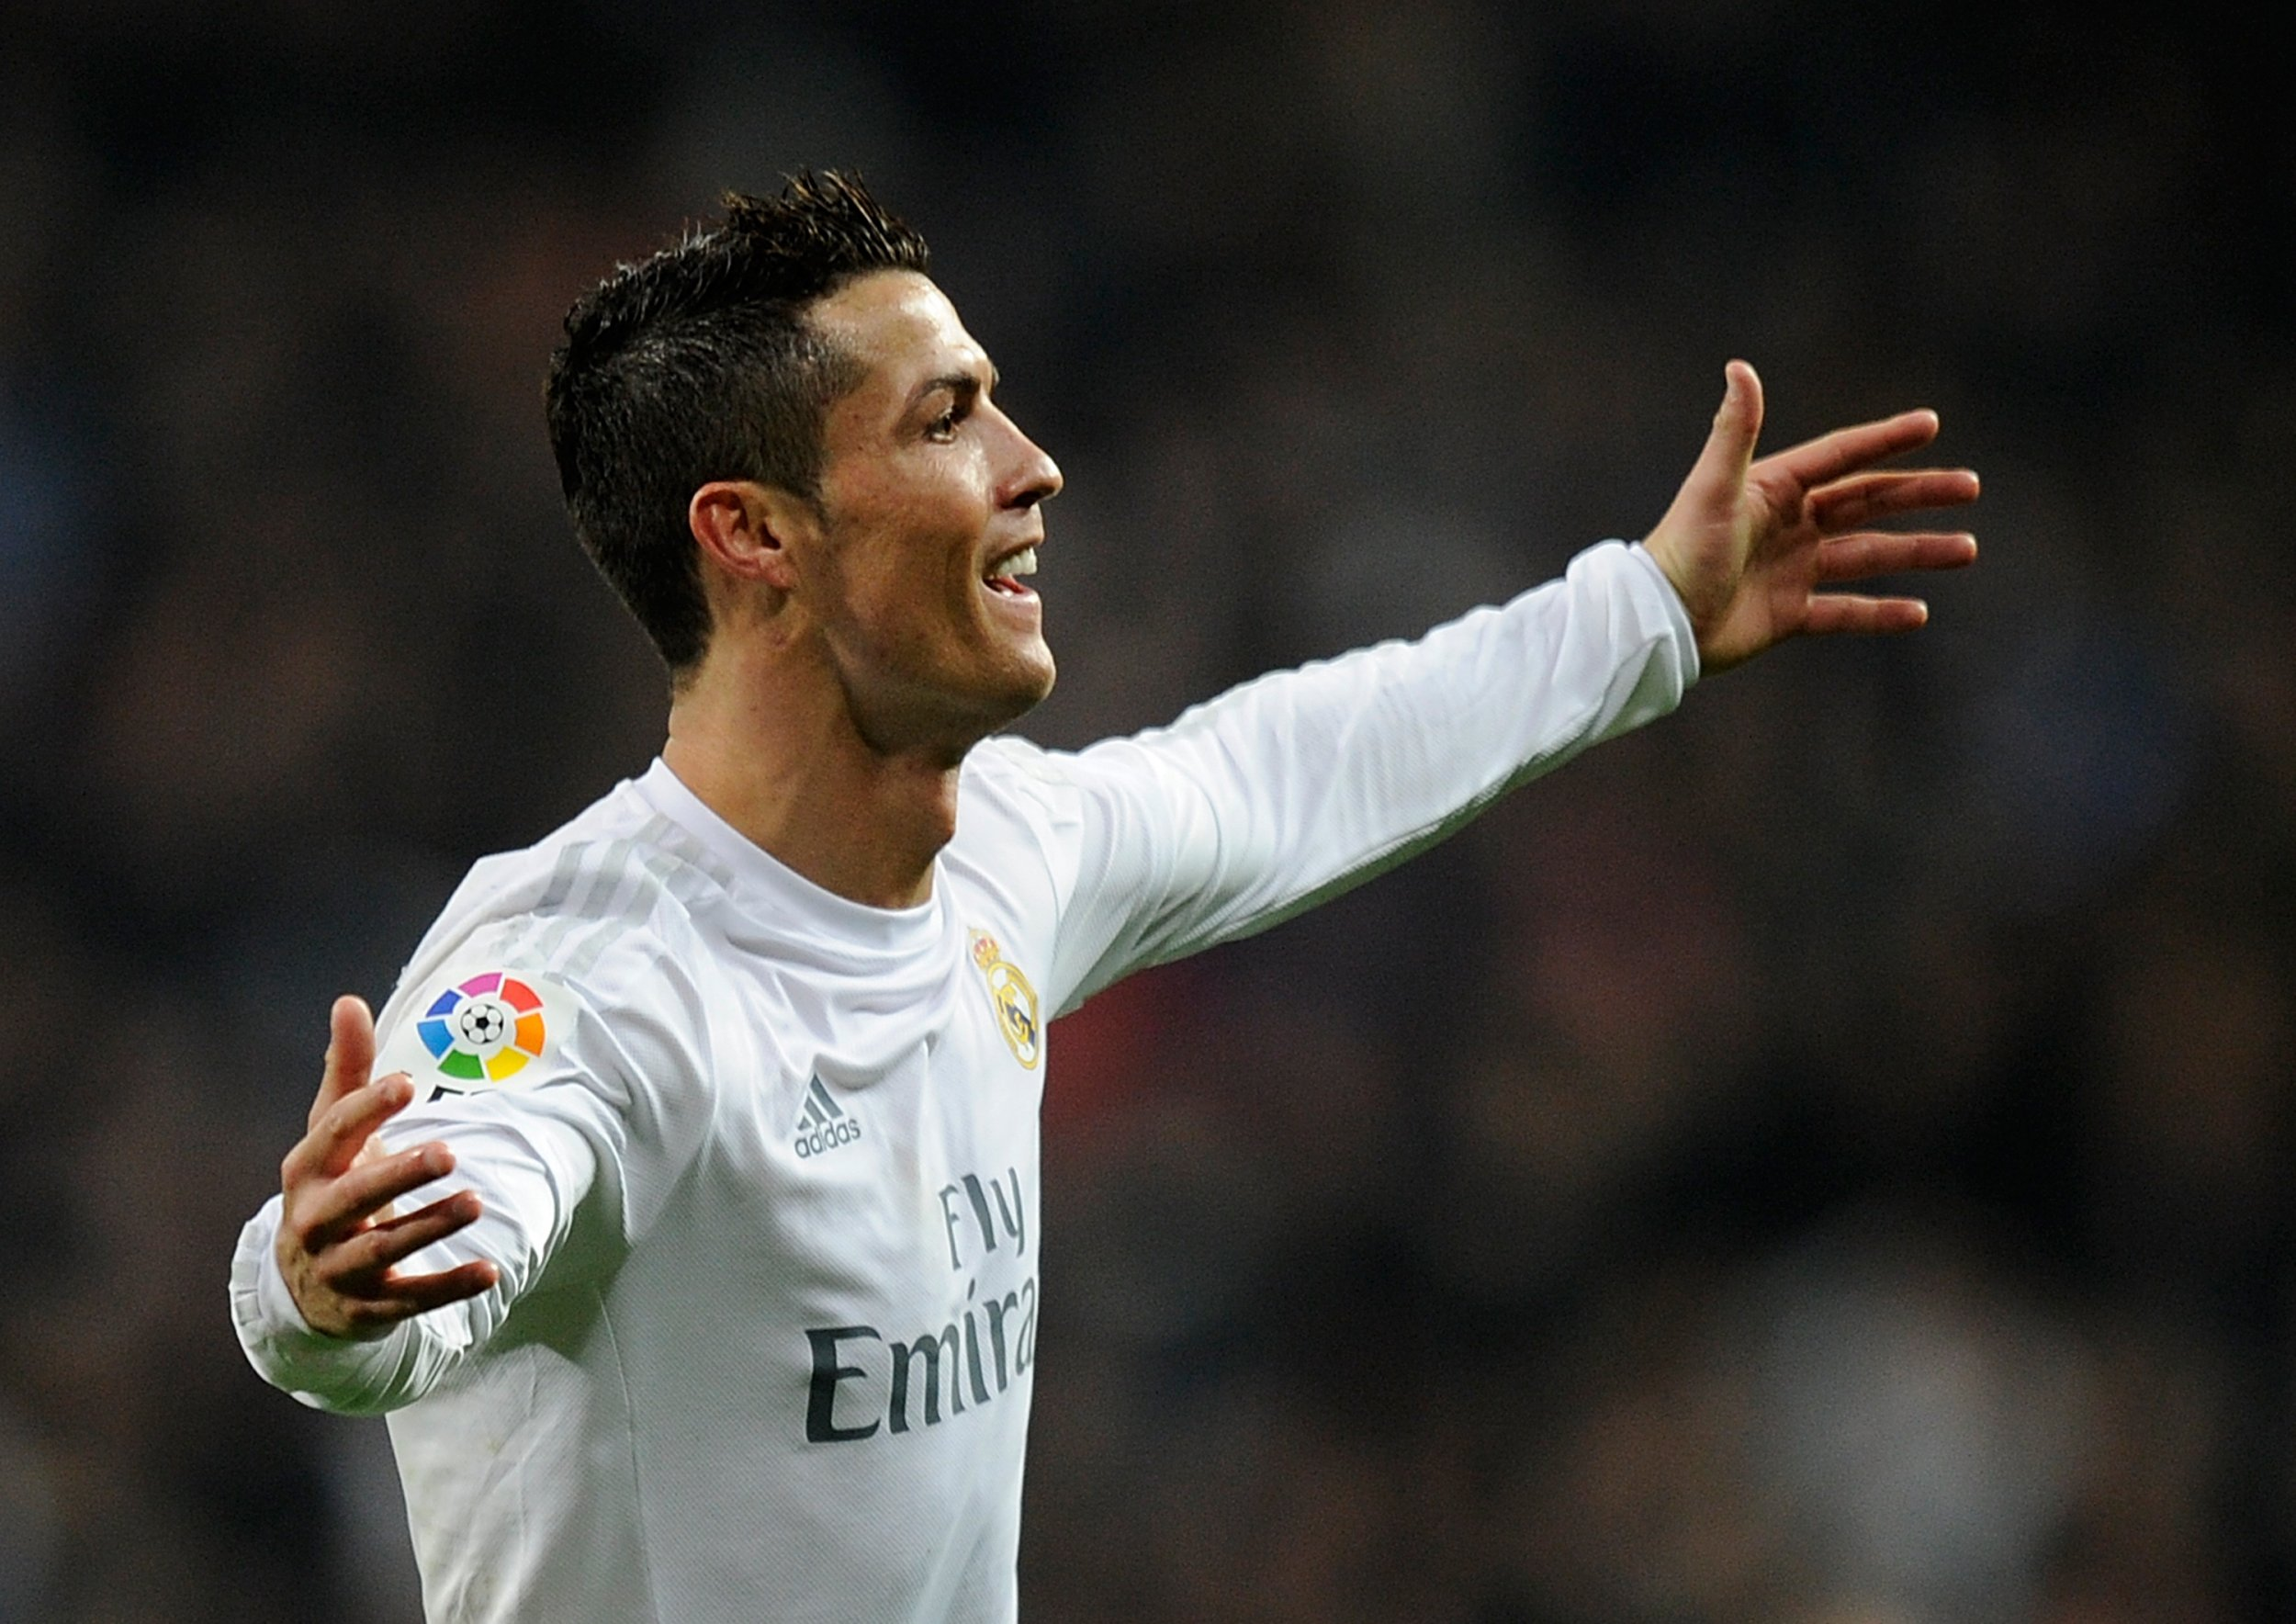 Cristiano Ronaldo: Star 'In Trouble' With Real Madrid Over